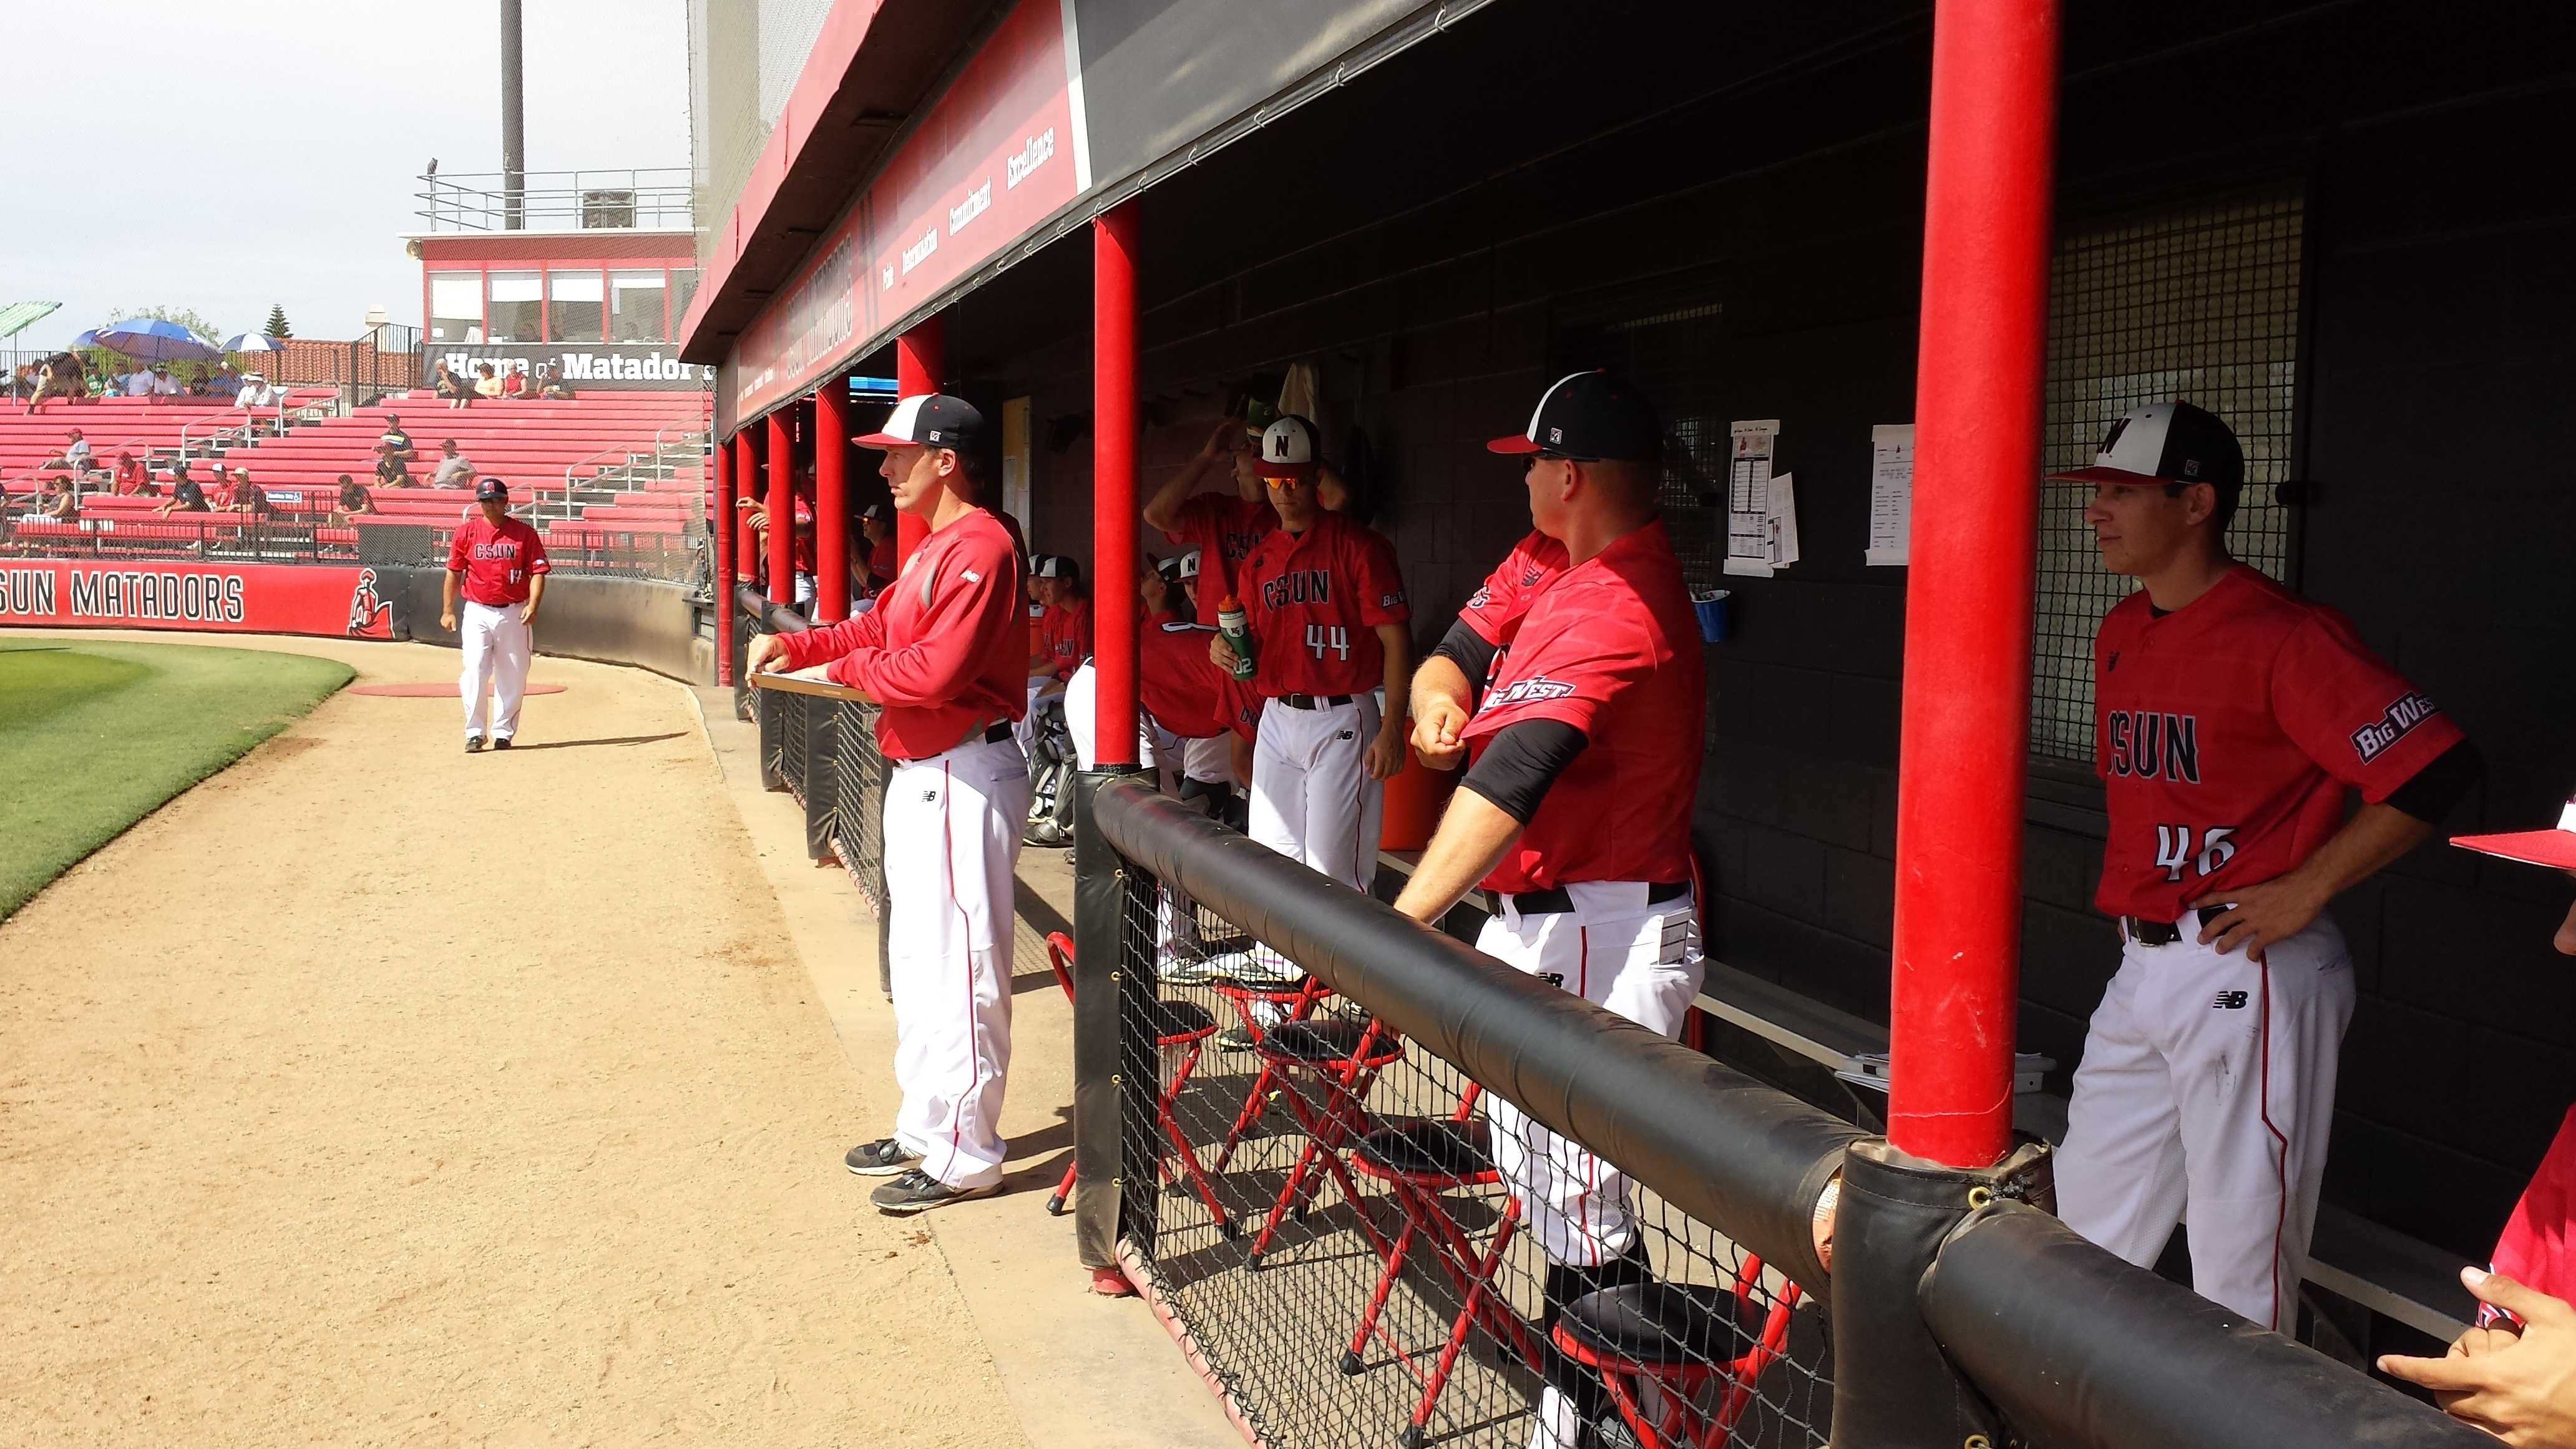 CSUN Head Coach Greg Moore looking on, as his team begins to play the final game in their three day series versus George Washington at Matador Field. Photo credit: Jordan Ball